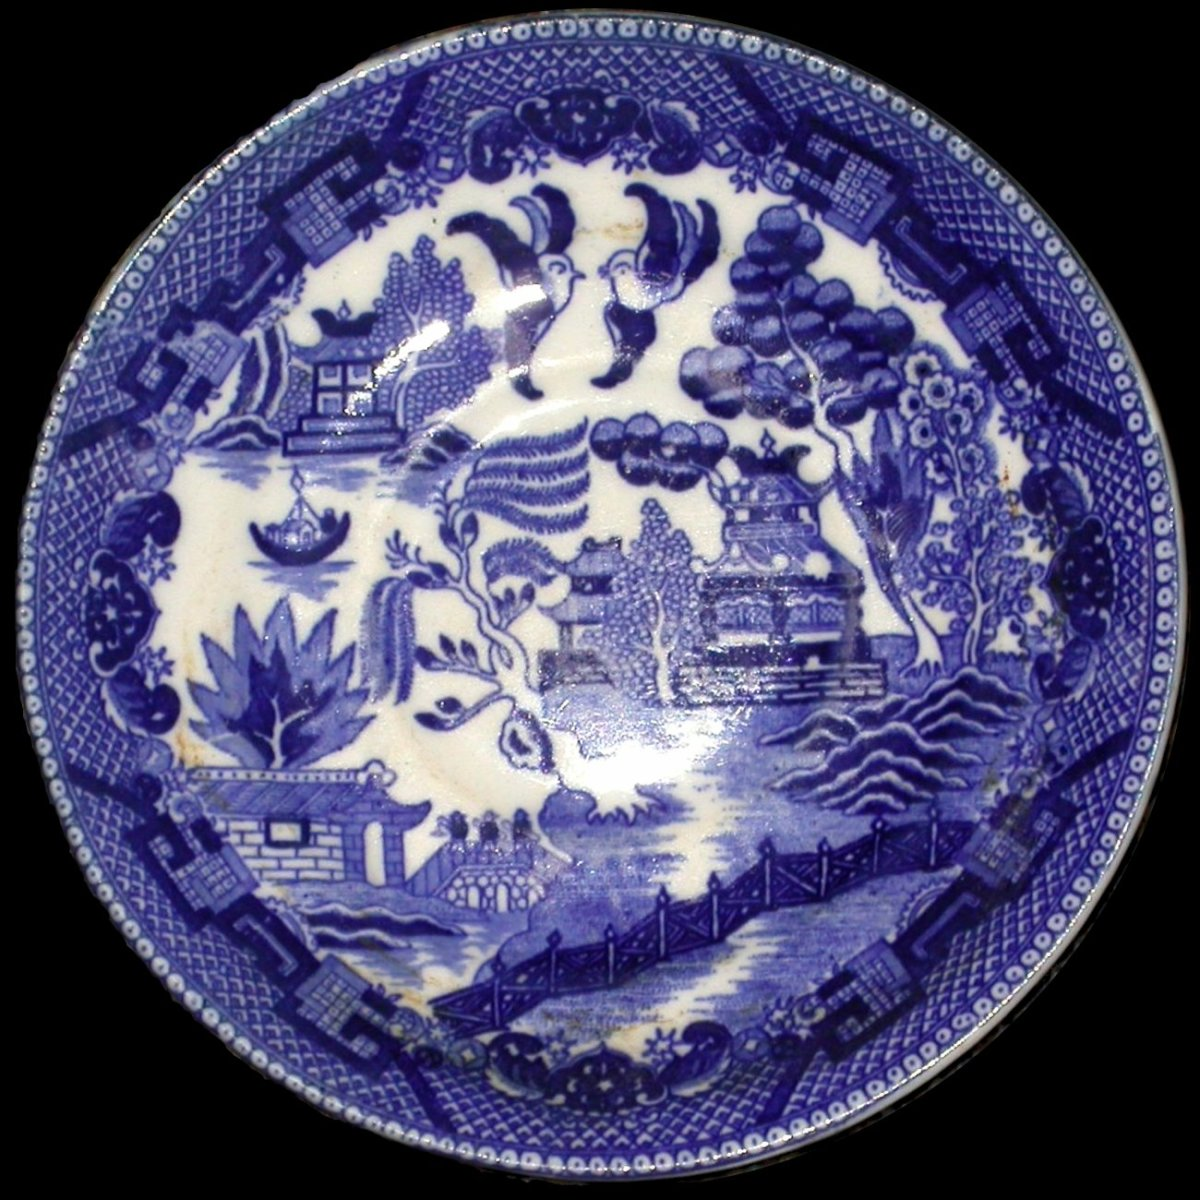 A Blue Willow Plate Image Credit: The Wikipedia